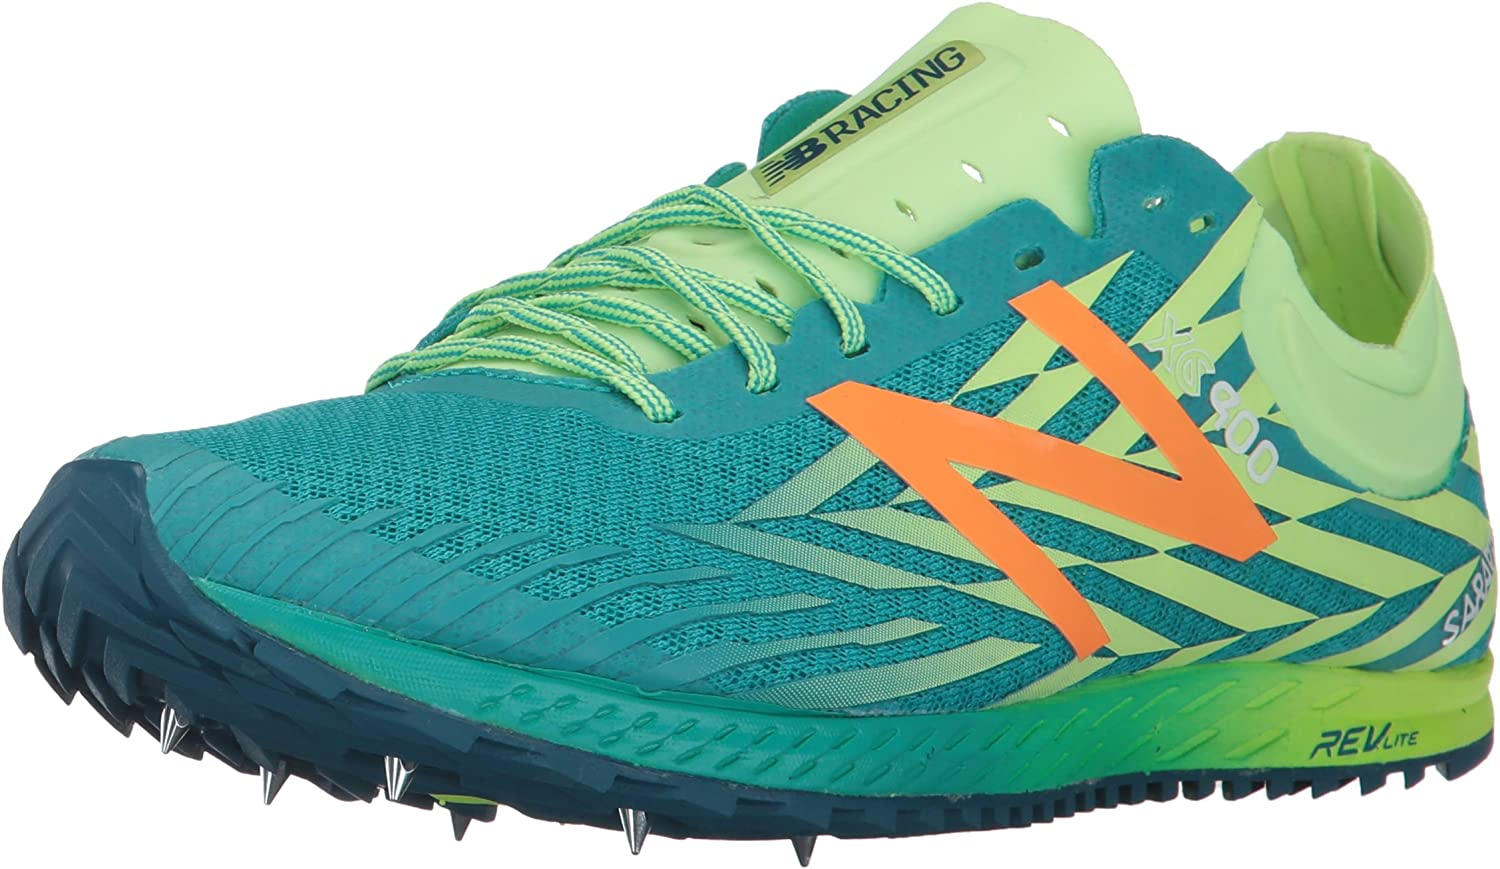 New Balance Women s 900V Removable Spike Track-Shoes, Alpha Pink Vivid Tangerine, 8.5 B US